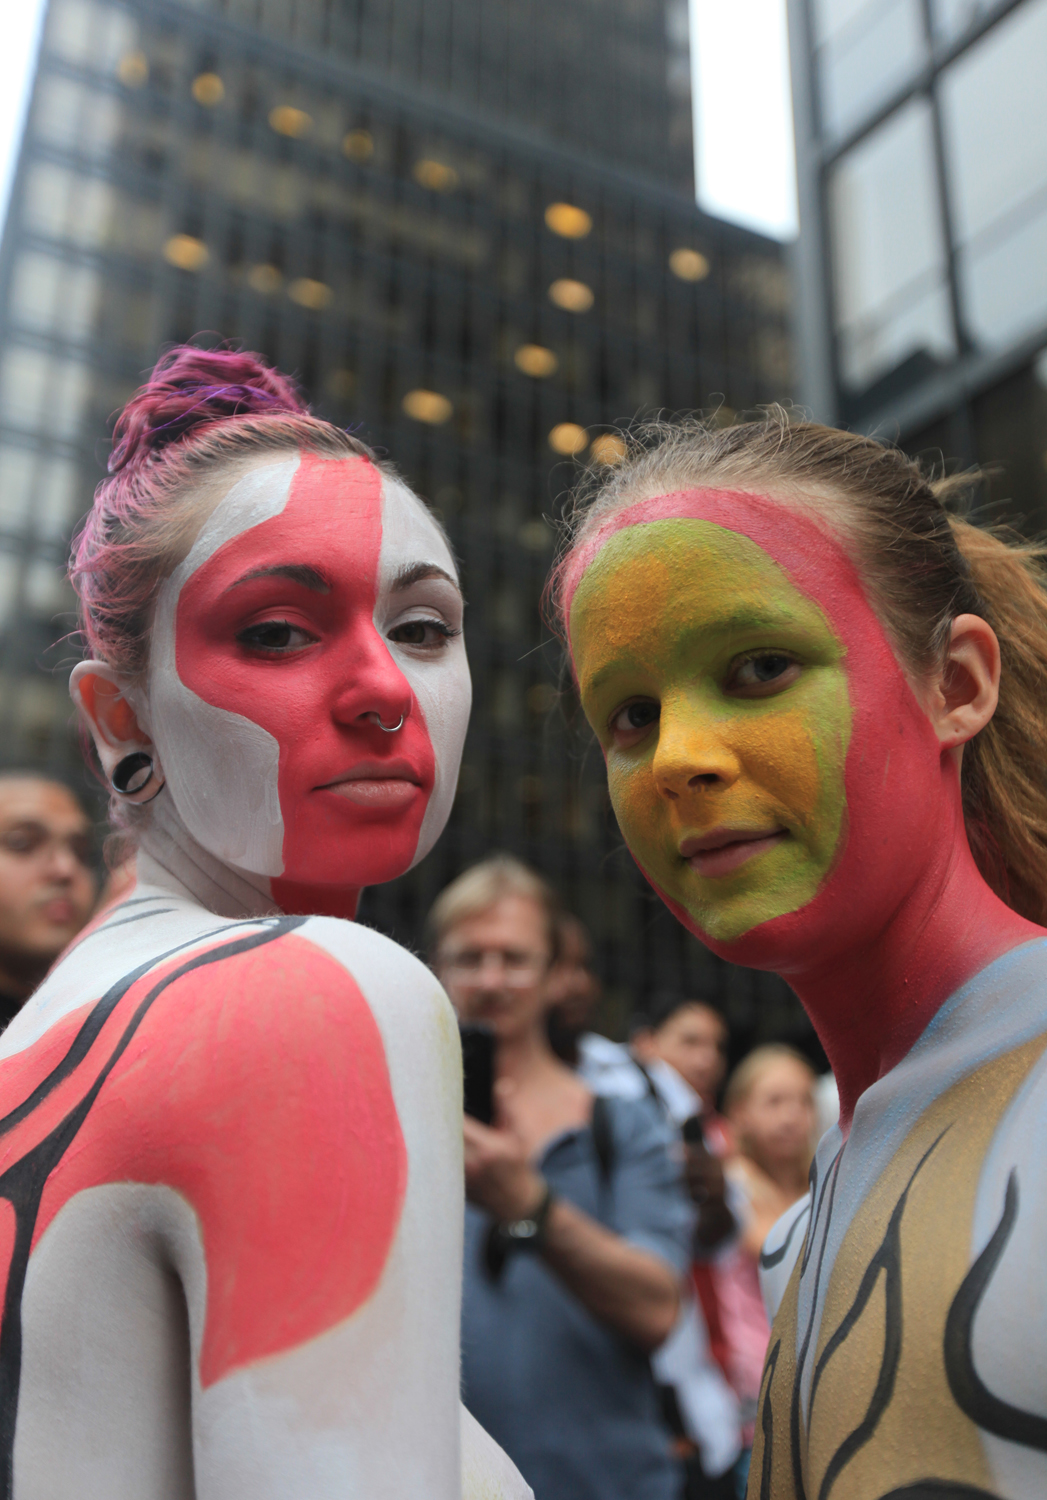 Nudists Dylan Hall, left, and Felicity Jones participate in public body painting event by artist Andy Golub near New York's Times Square on July 31, 2013.